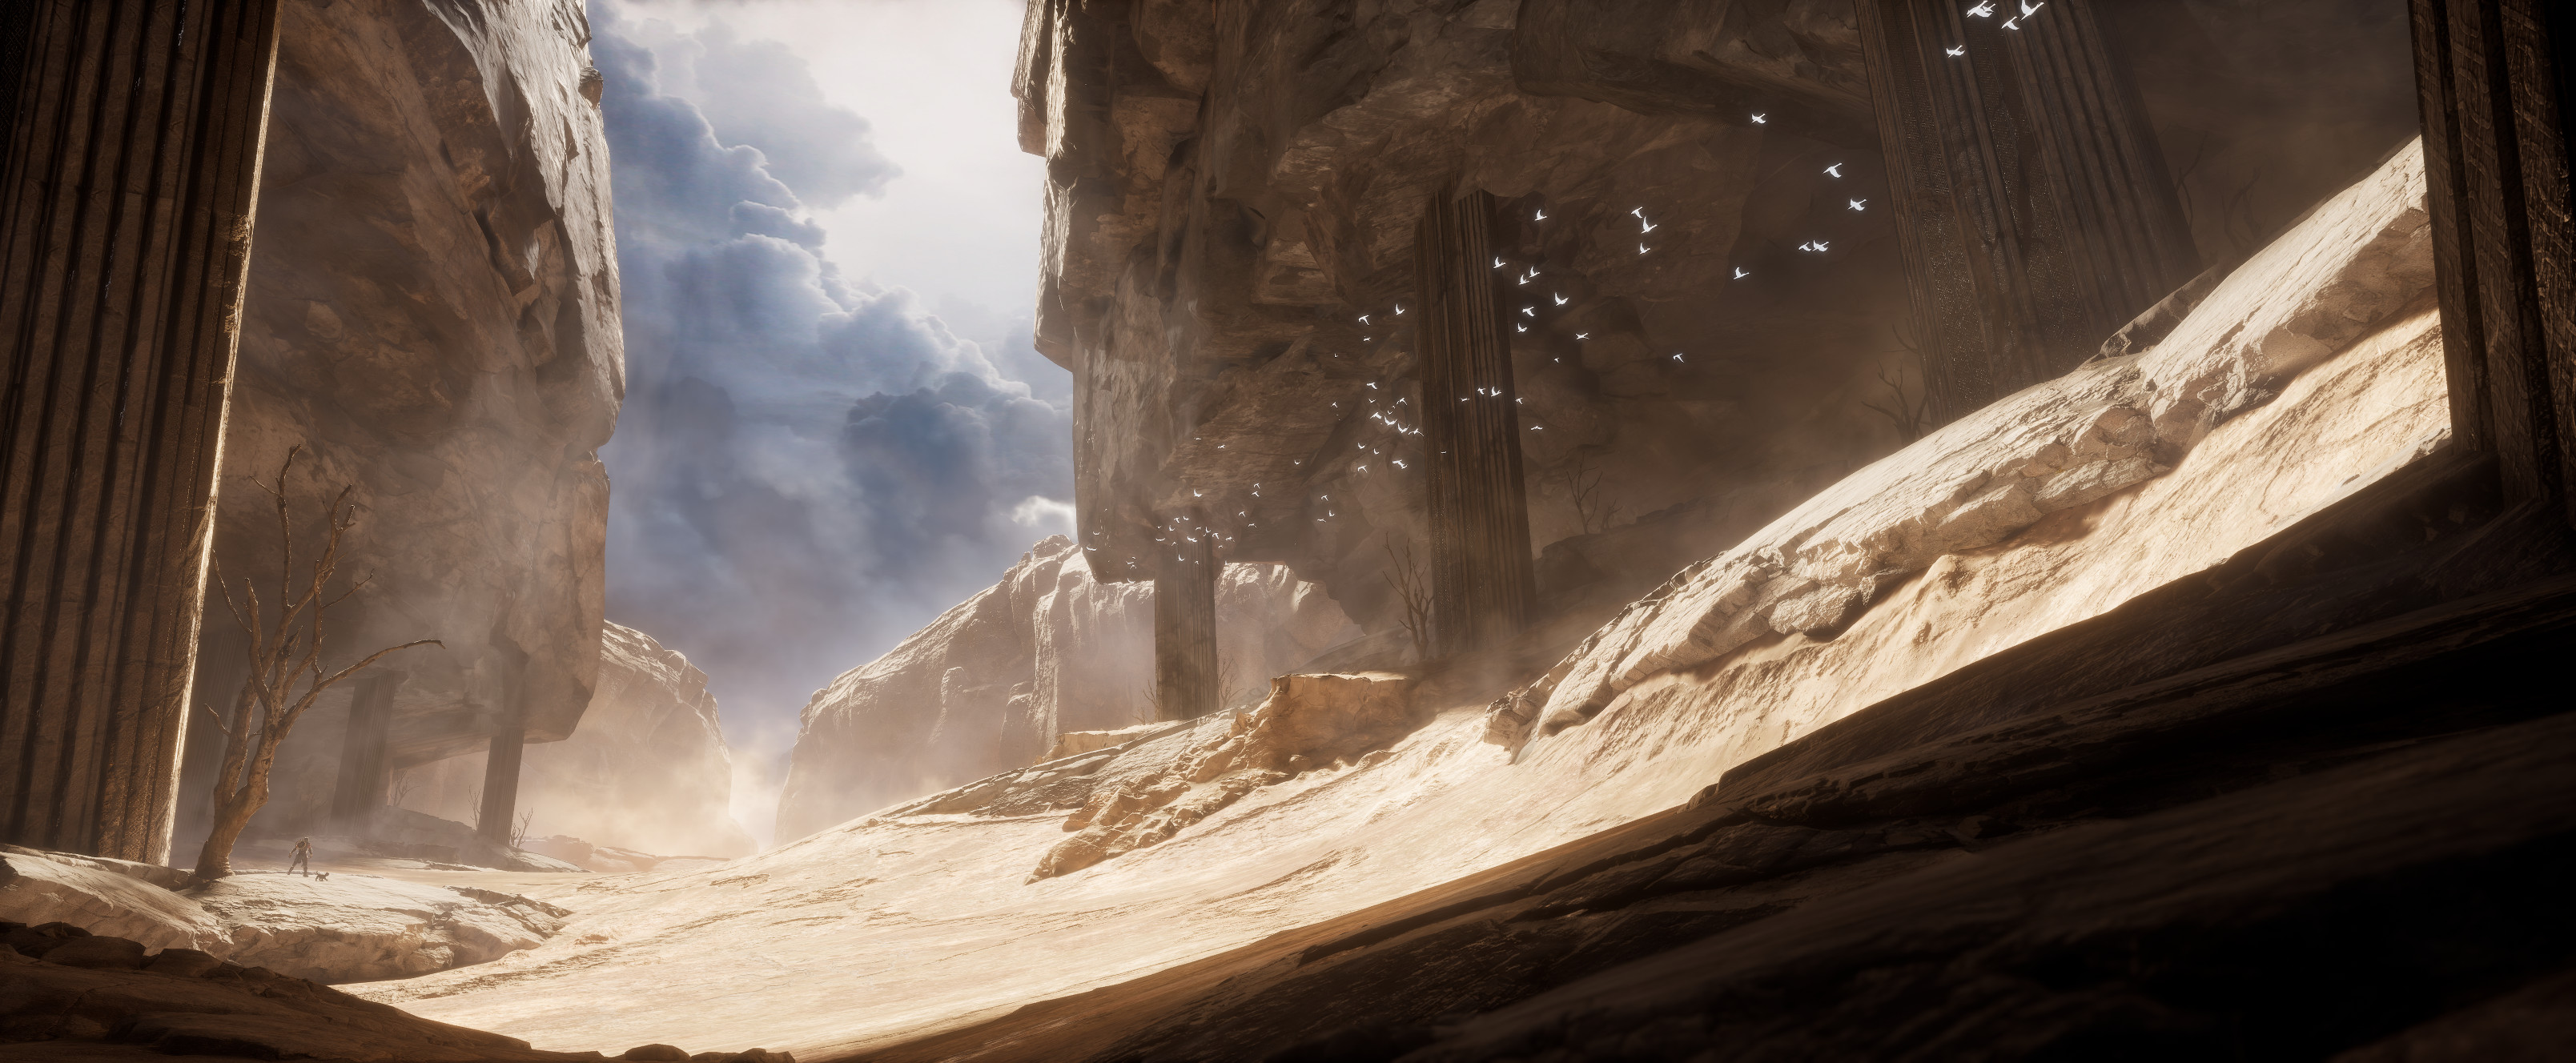 https://www.artstation.com/learning/courses/Vya/building-a-cinematic-environment-with-ue4/chapters/LDb7/intro